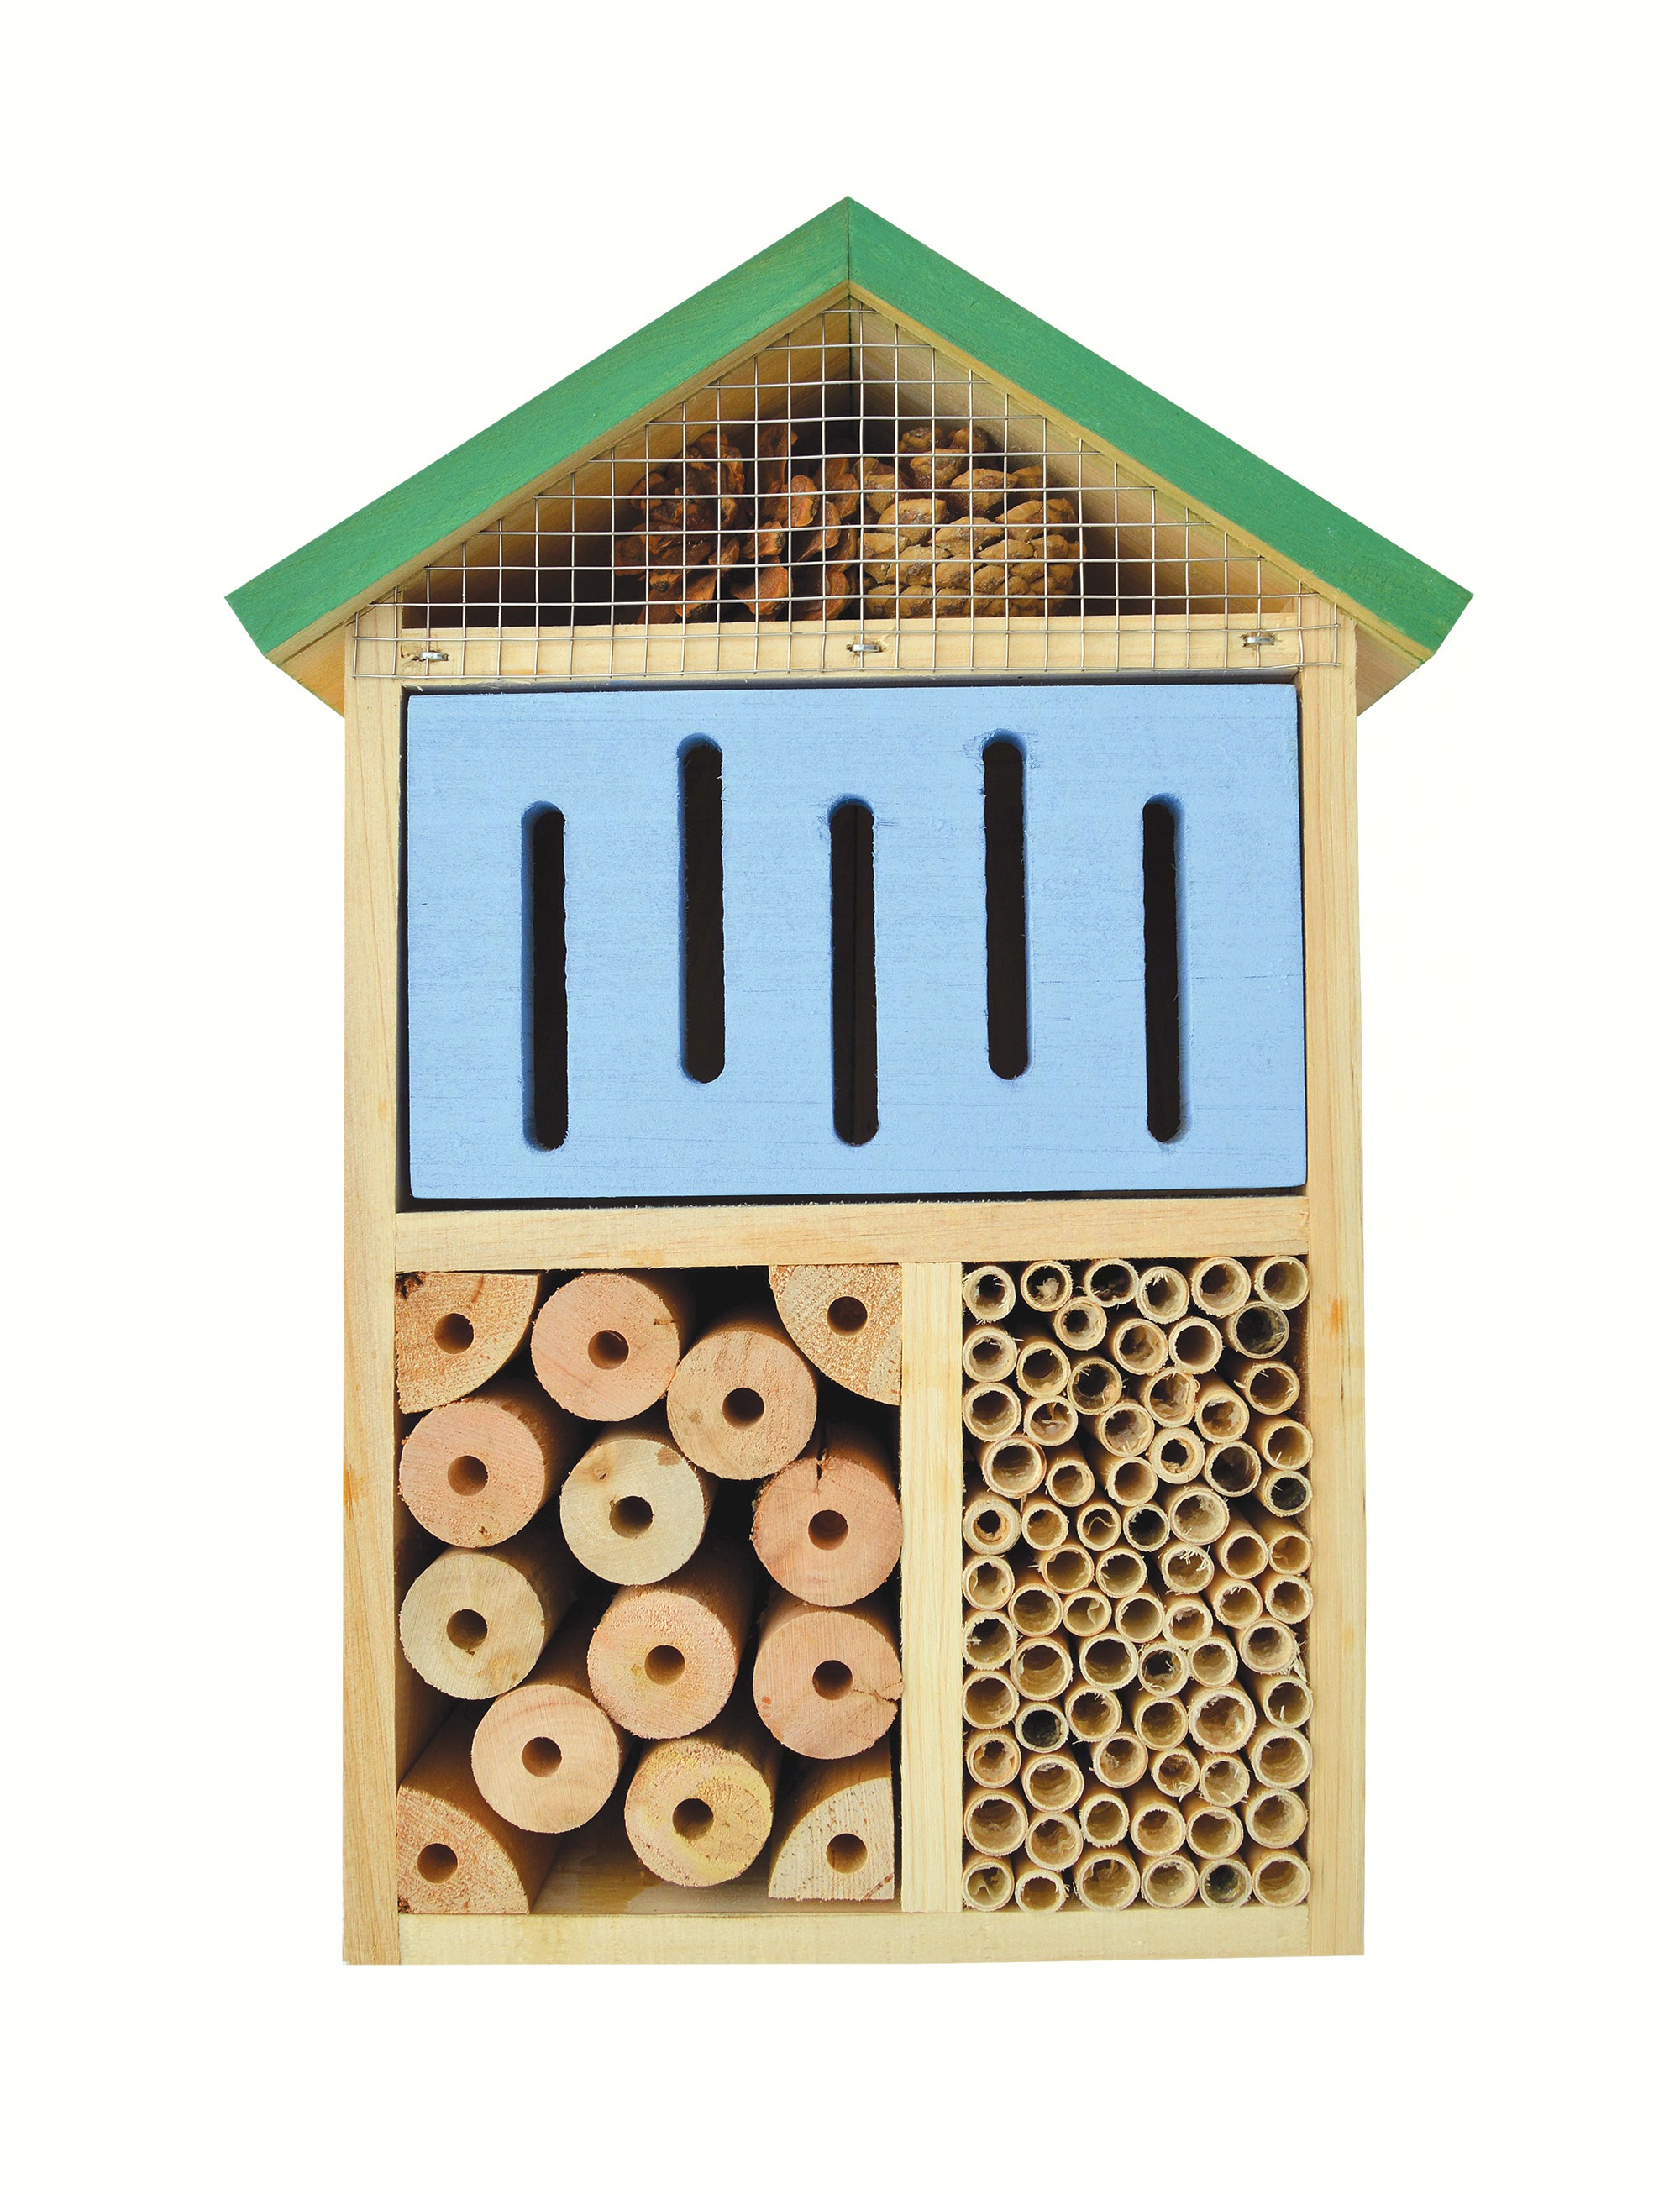 4 Chamber Insect House